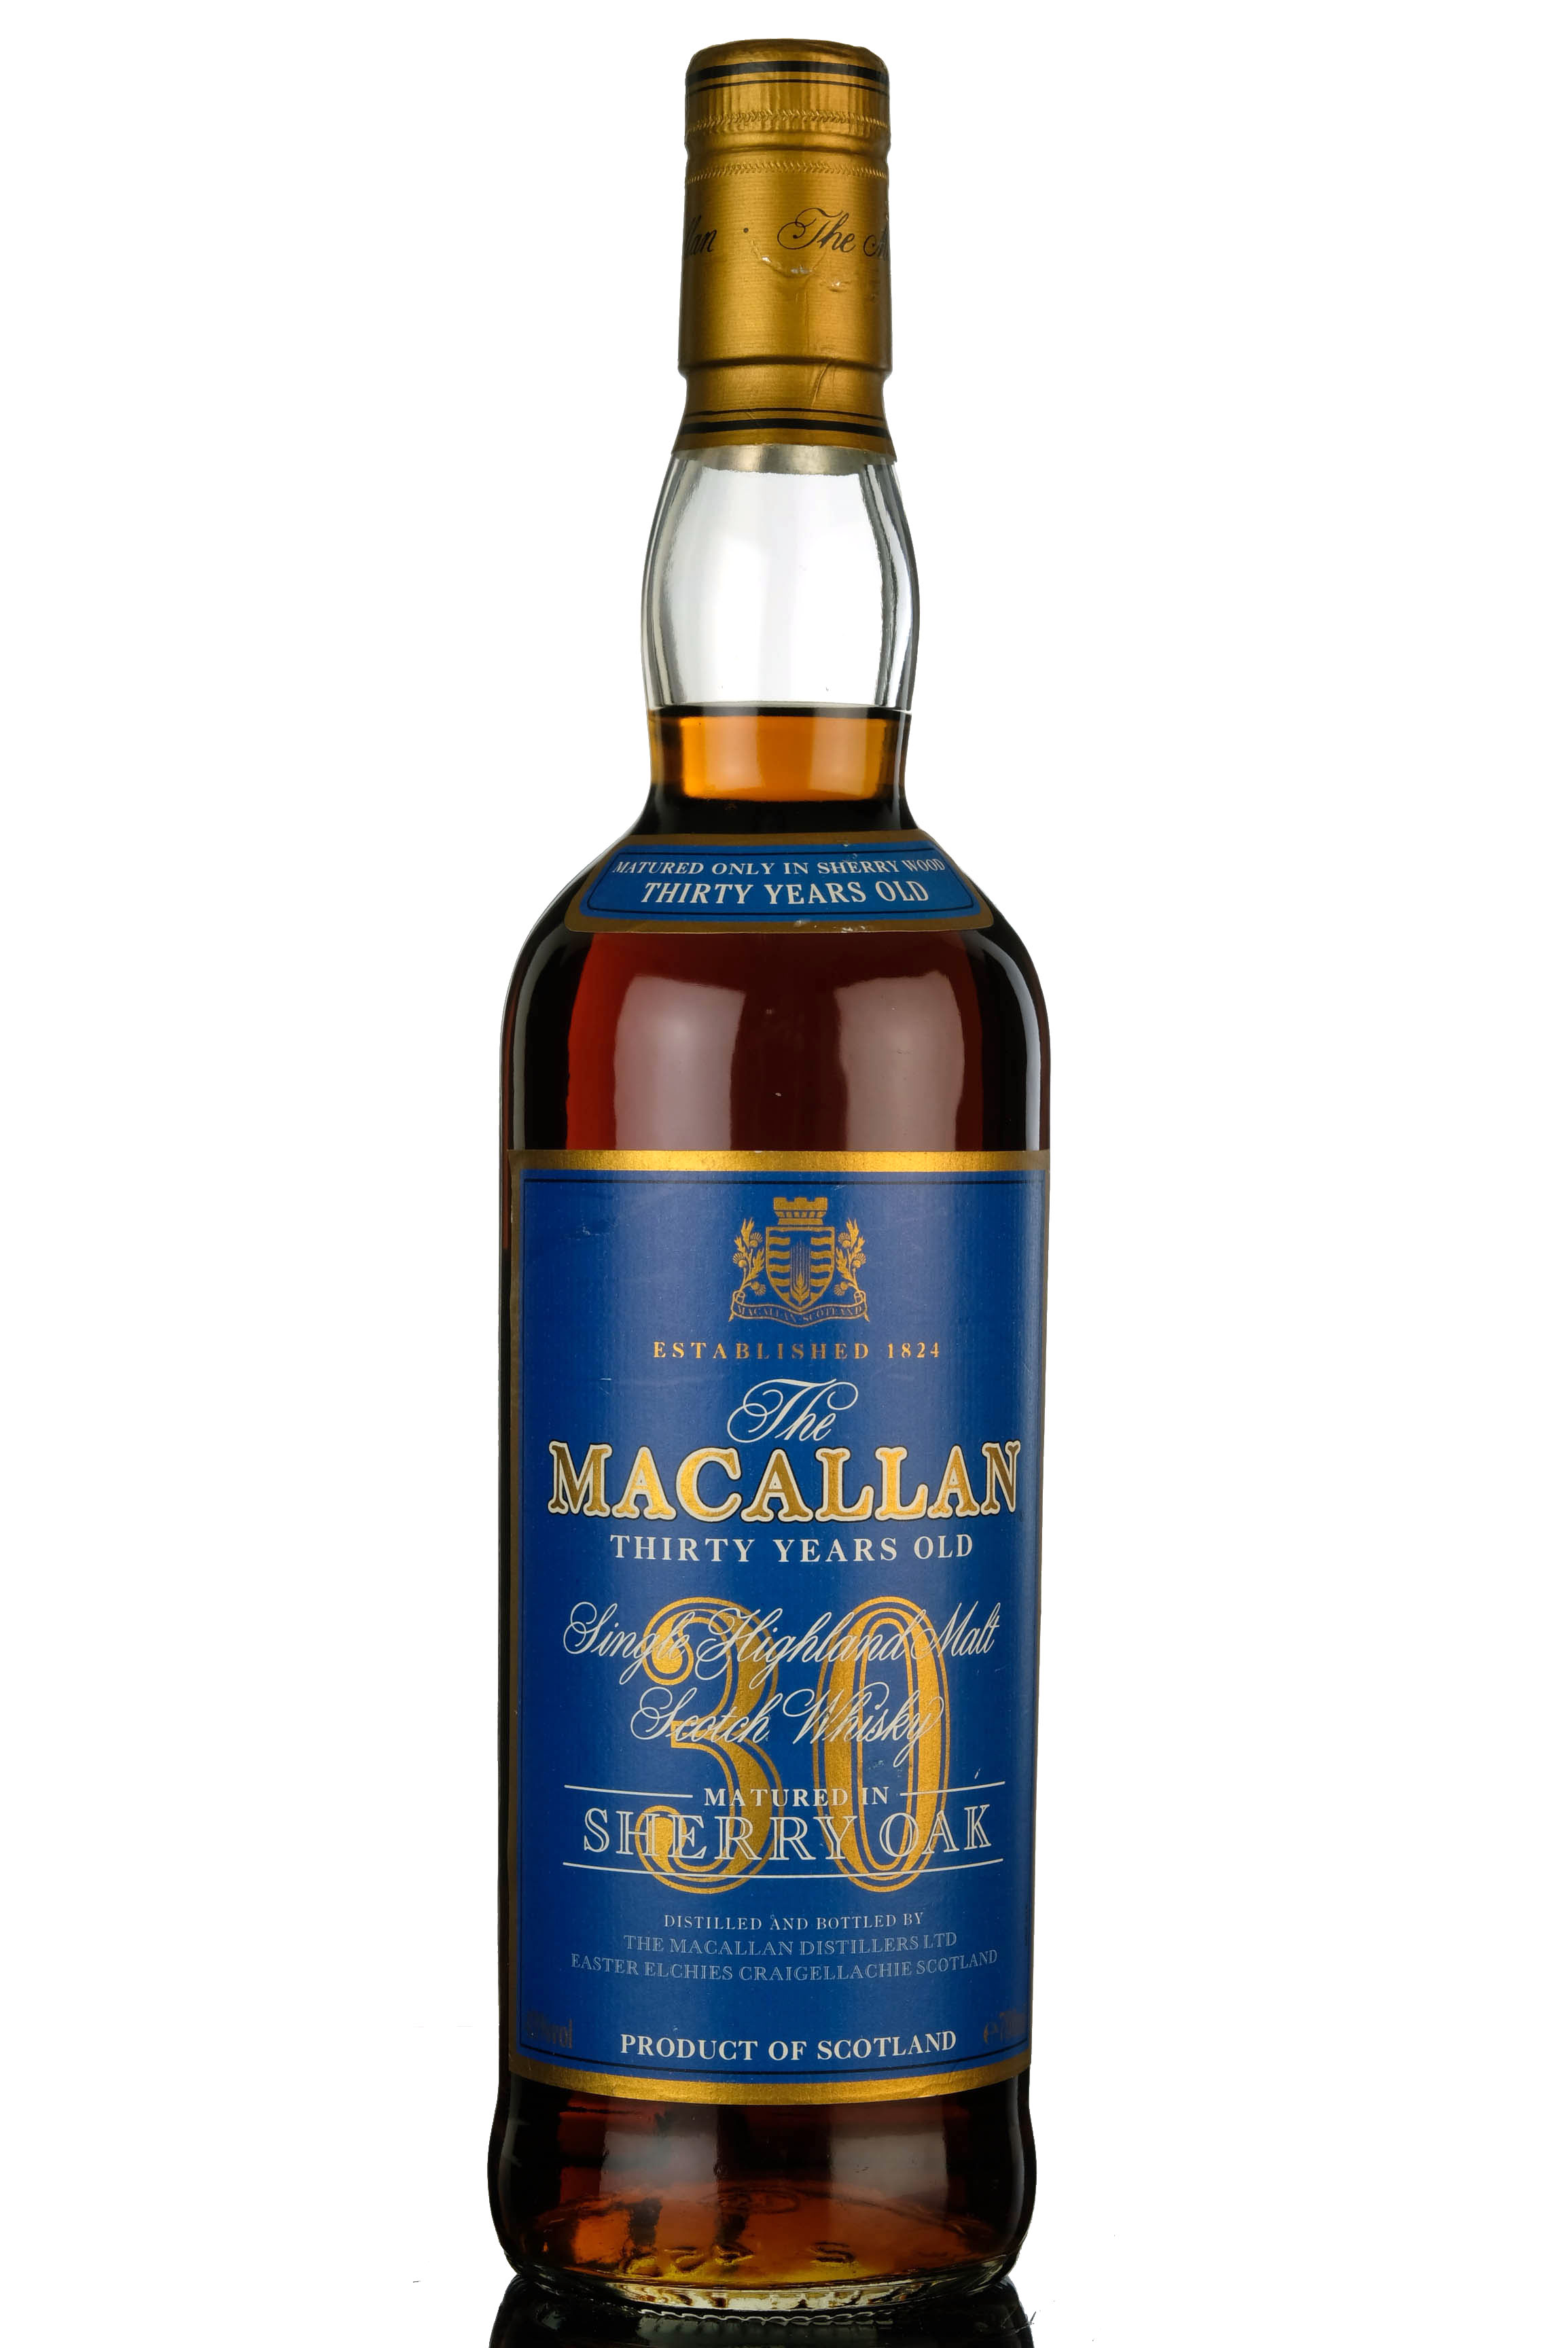 macallan 30 year old - sherry cask